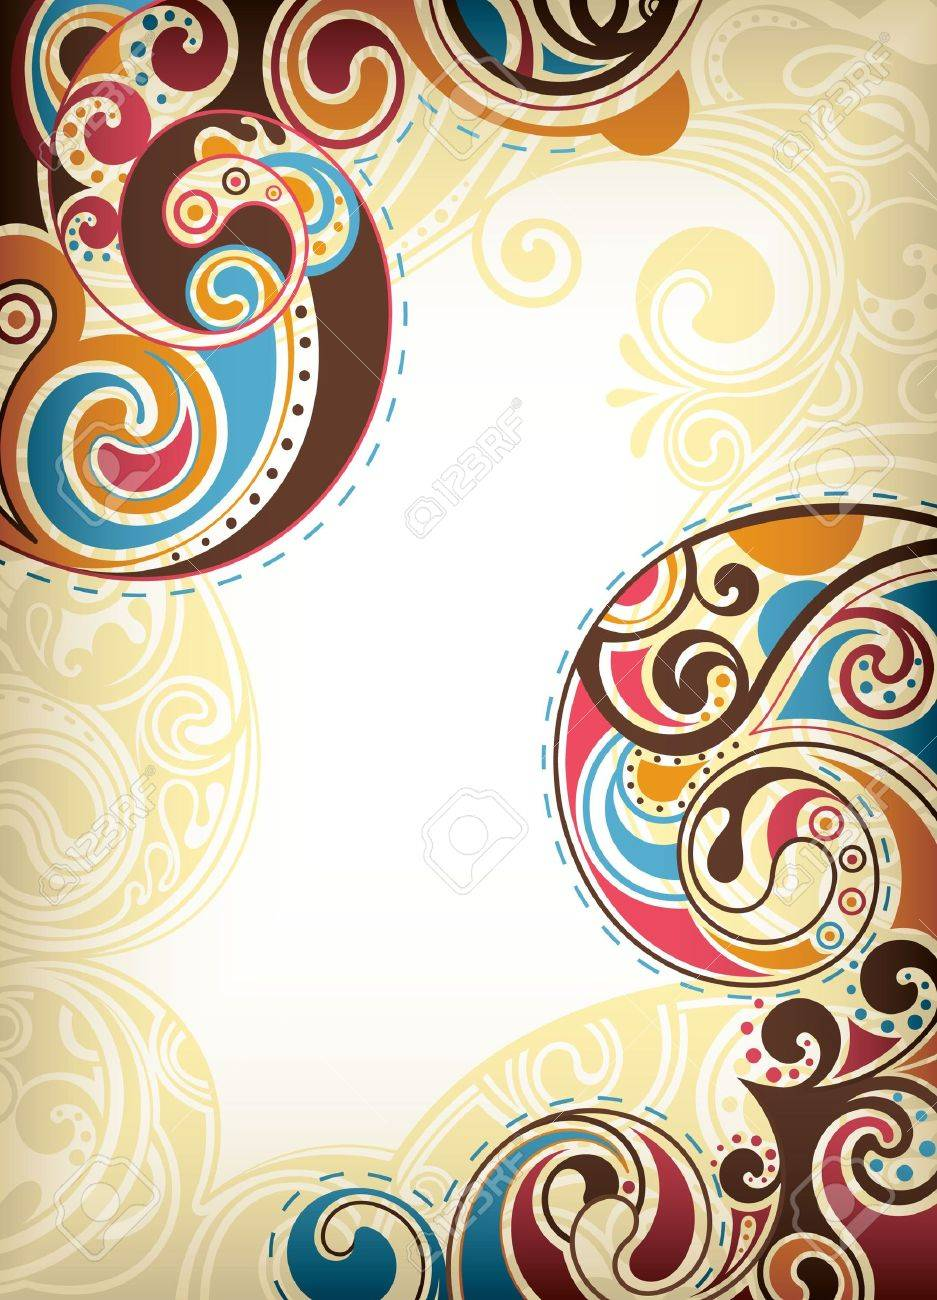 Abstract Colorful Scroll Stock Vector - 9211775